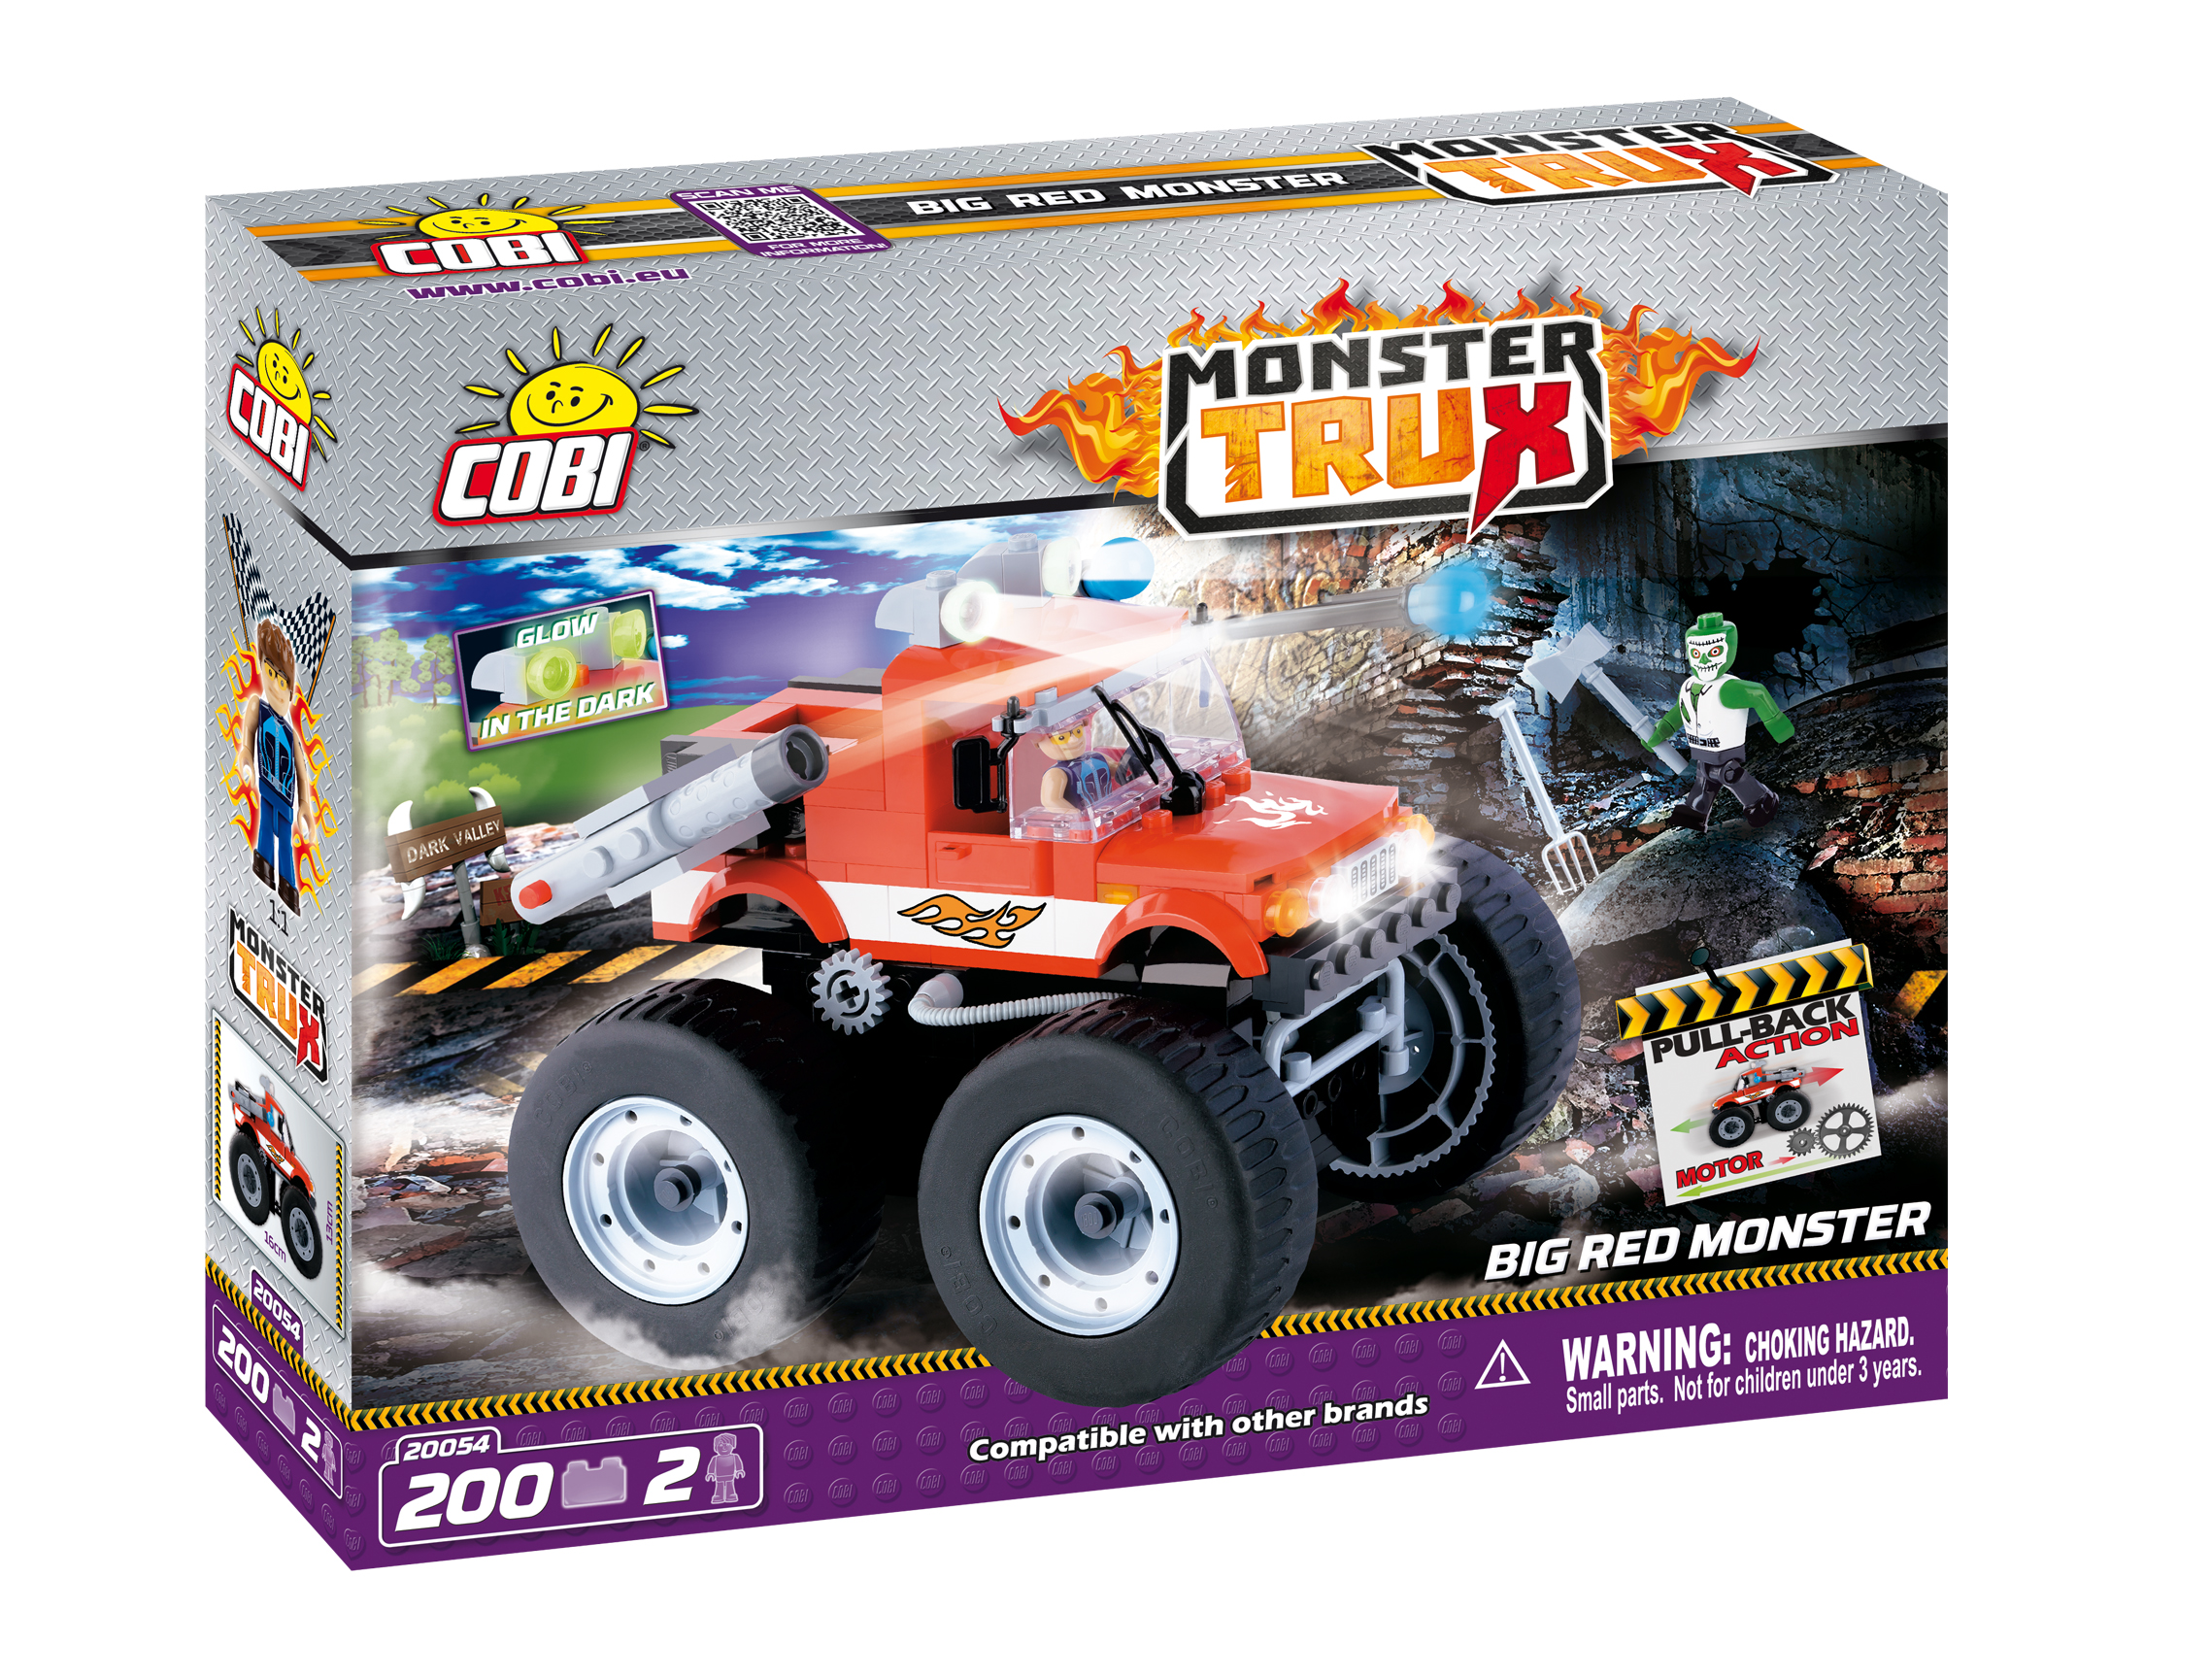 Monster Trux 280x55x220 null